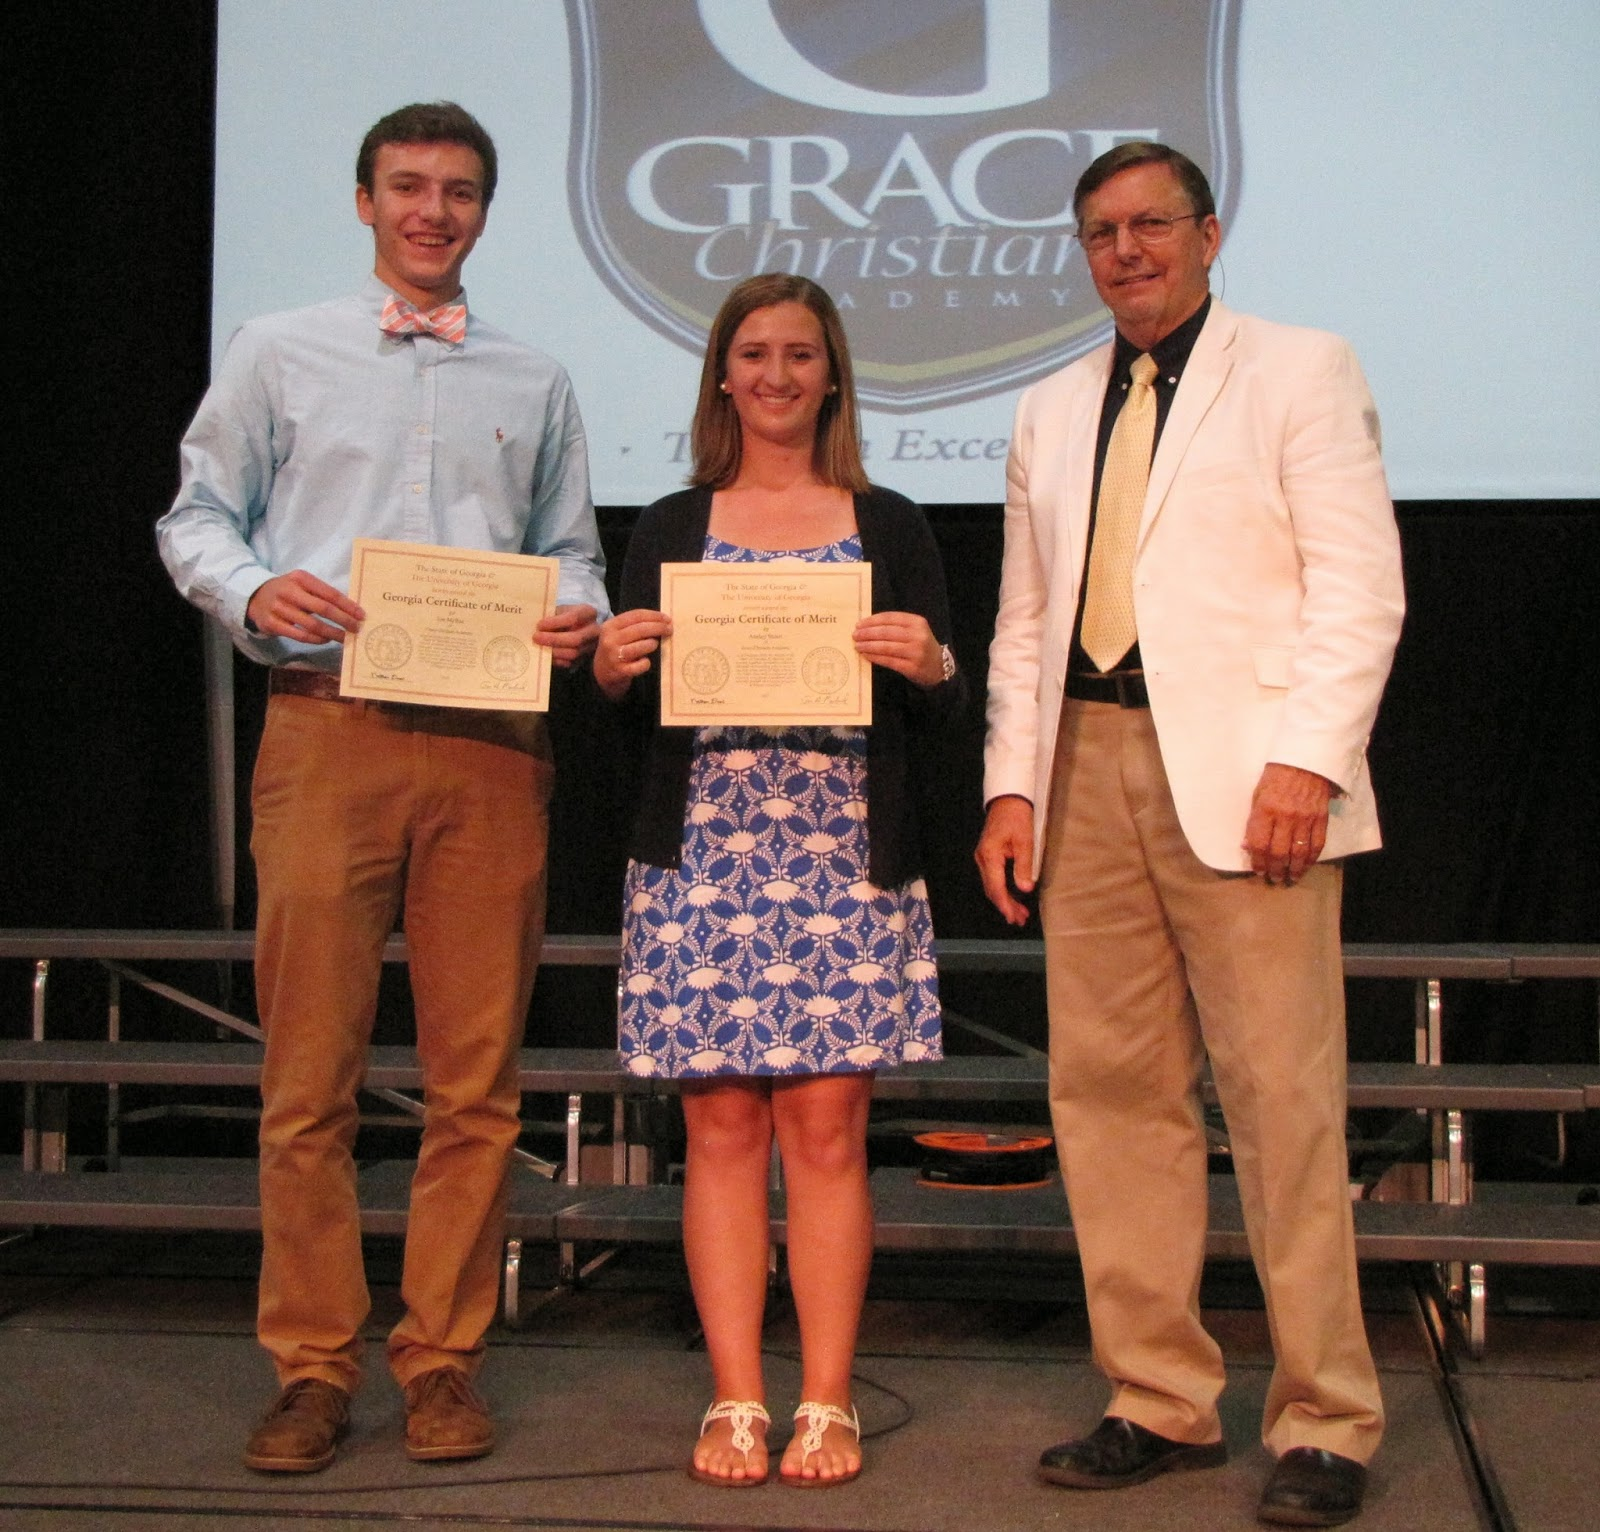 Grace Christian Academy Ms Hs Honorsawards Ceremony